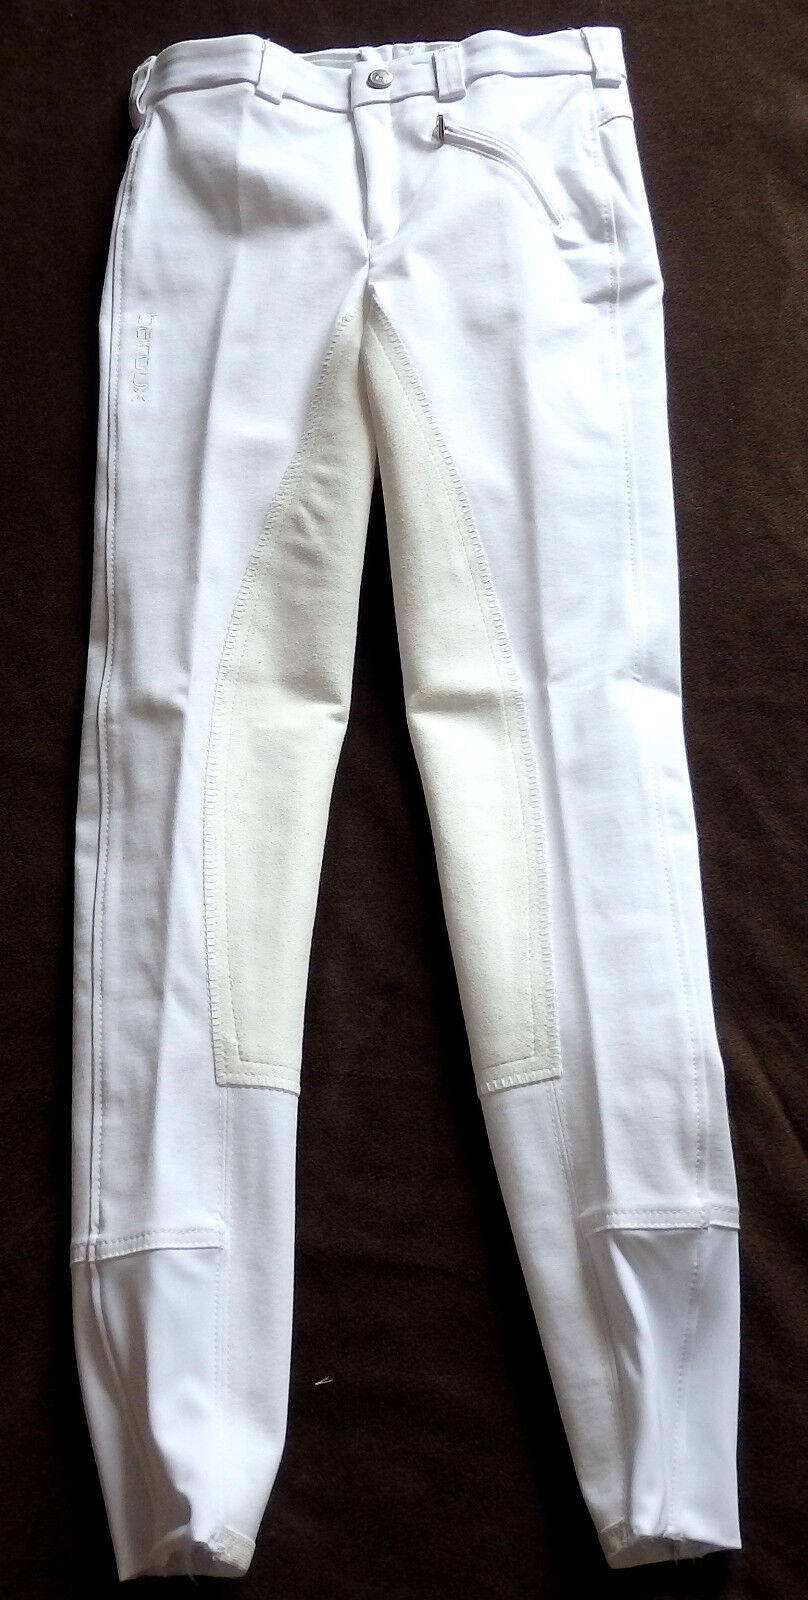 ldren jodhpurs, 3 4 Full Trim, White, Size 140SL, baroux (13)  all goods are specials